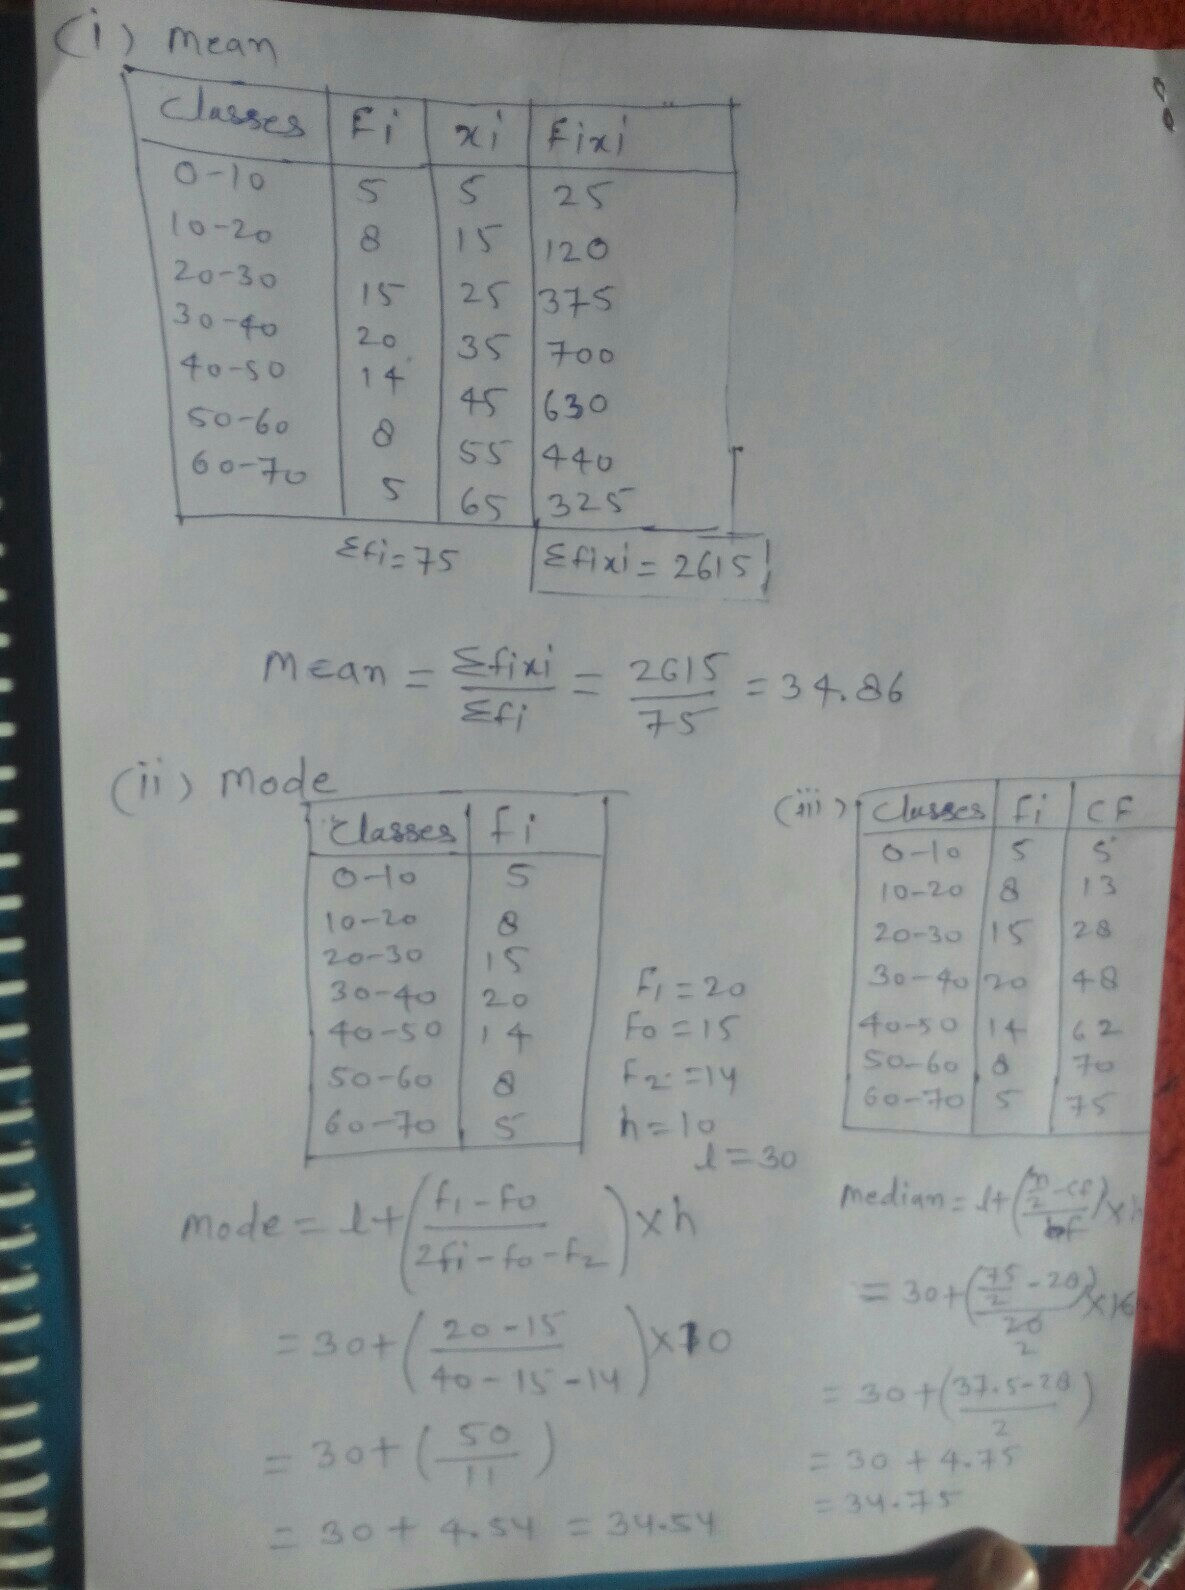 Find The Mean Mode And Median For The Following Data